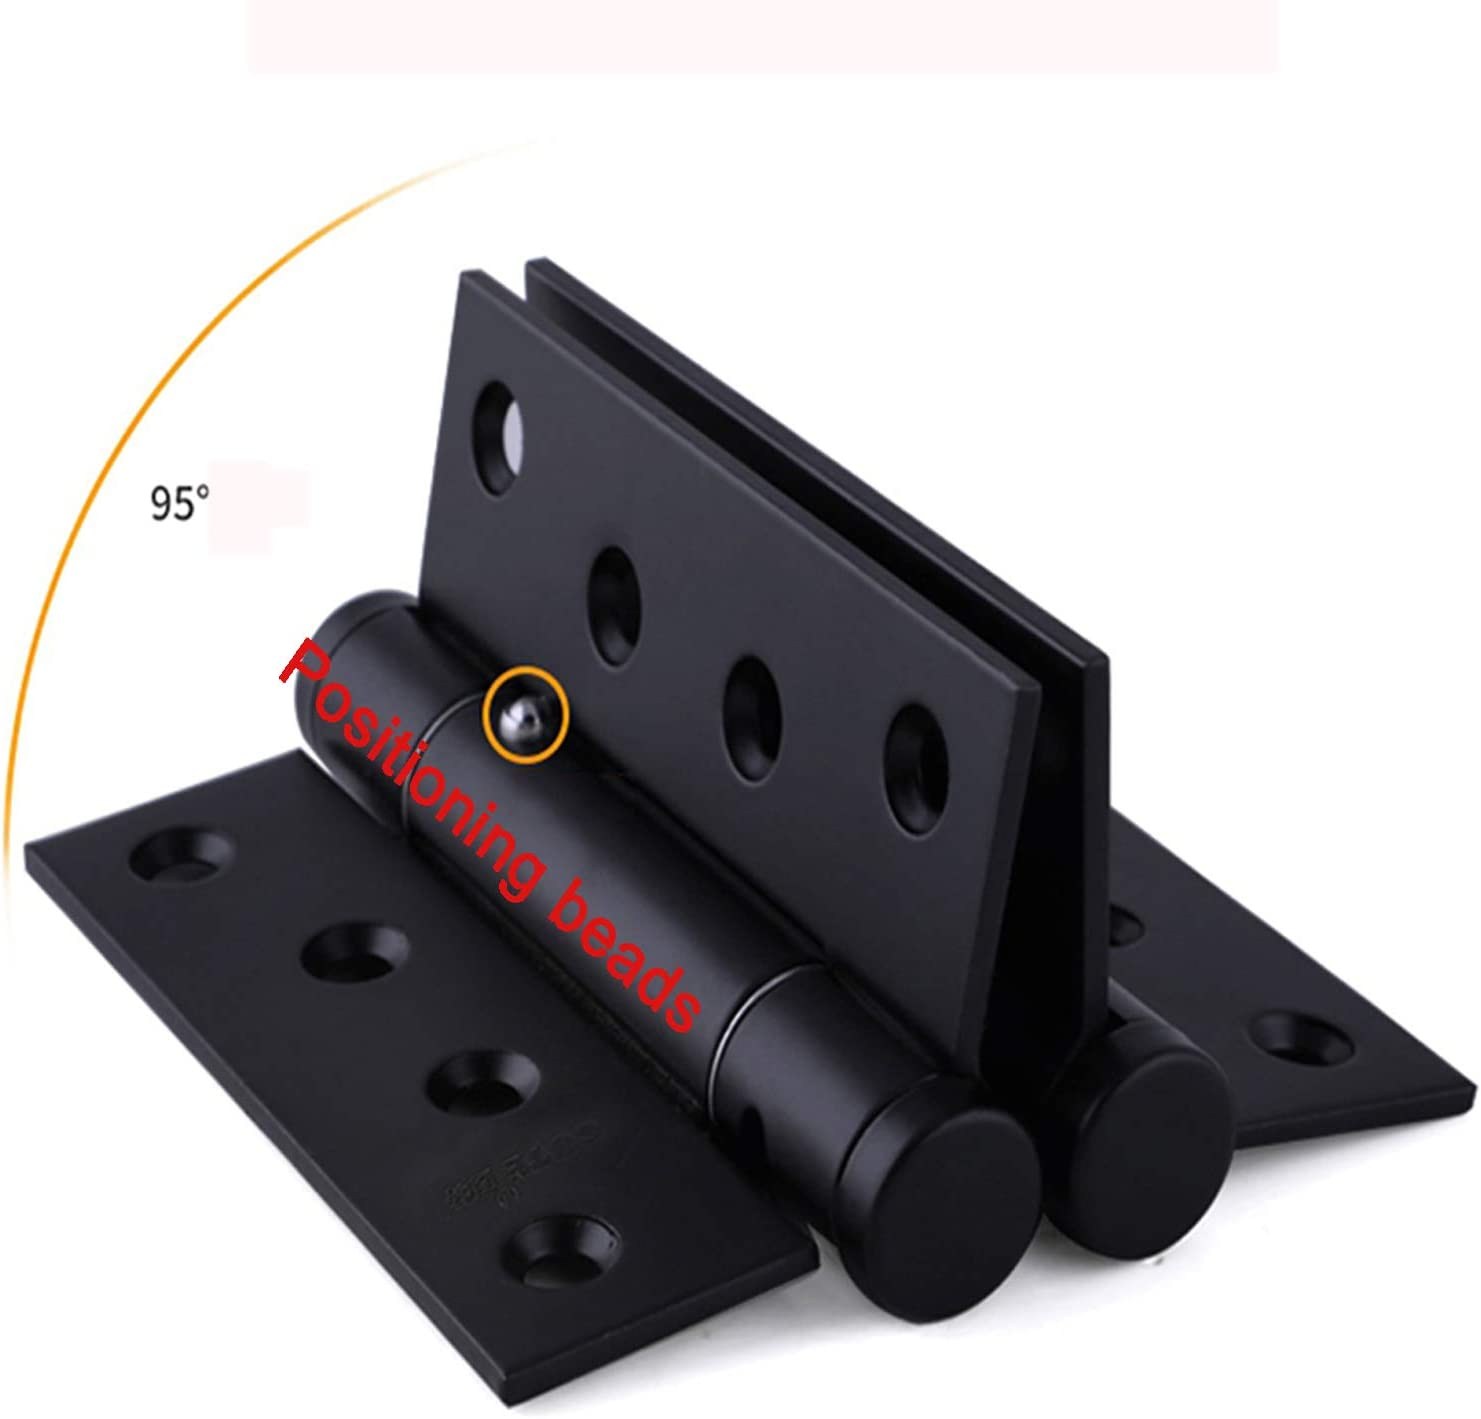 ,Black 2 PCS SQINAA Stainless Steel Door Hinges with Stainless Steel Screws Butt Heavy Duty Folding Hinge for Furniture Cabinet Gate Closet Door Home Hardware